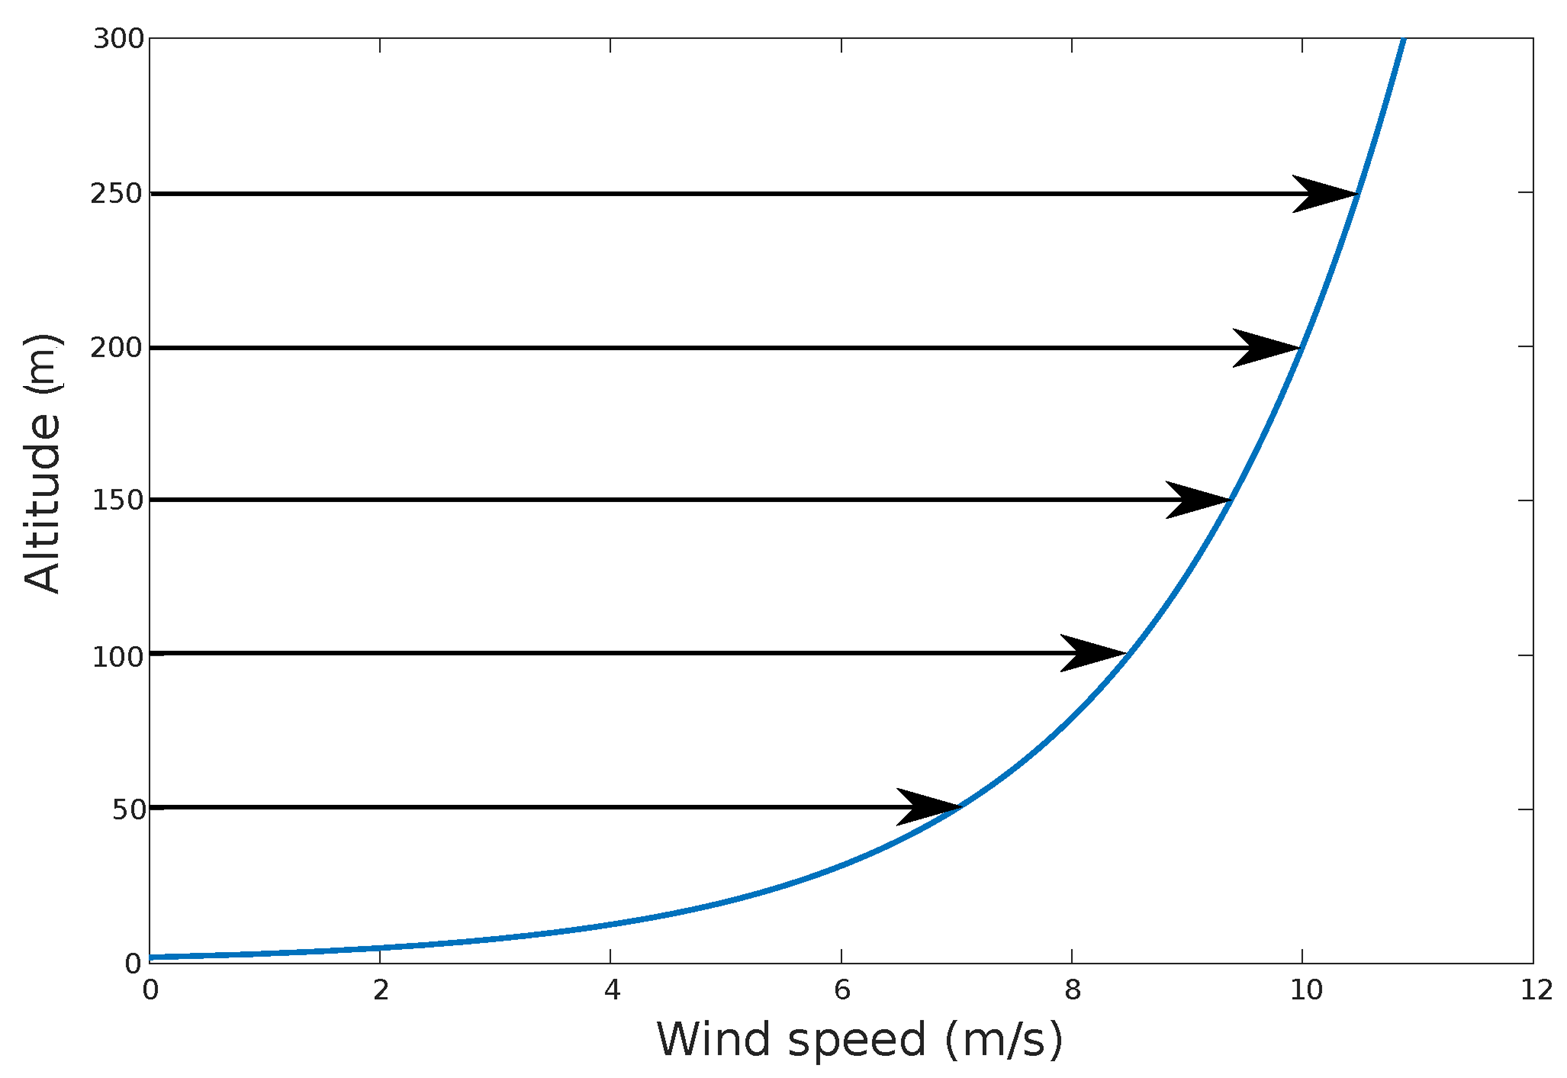 Demonstration of how wind speed changes according to altitude